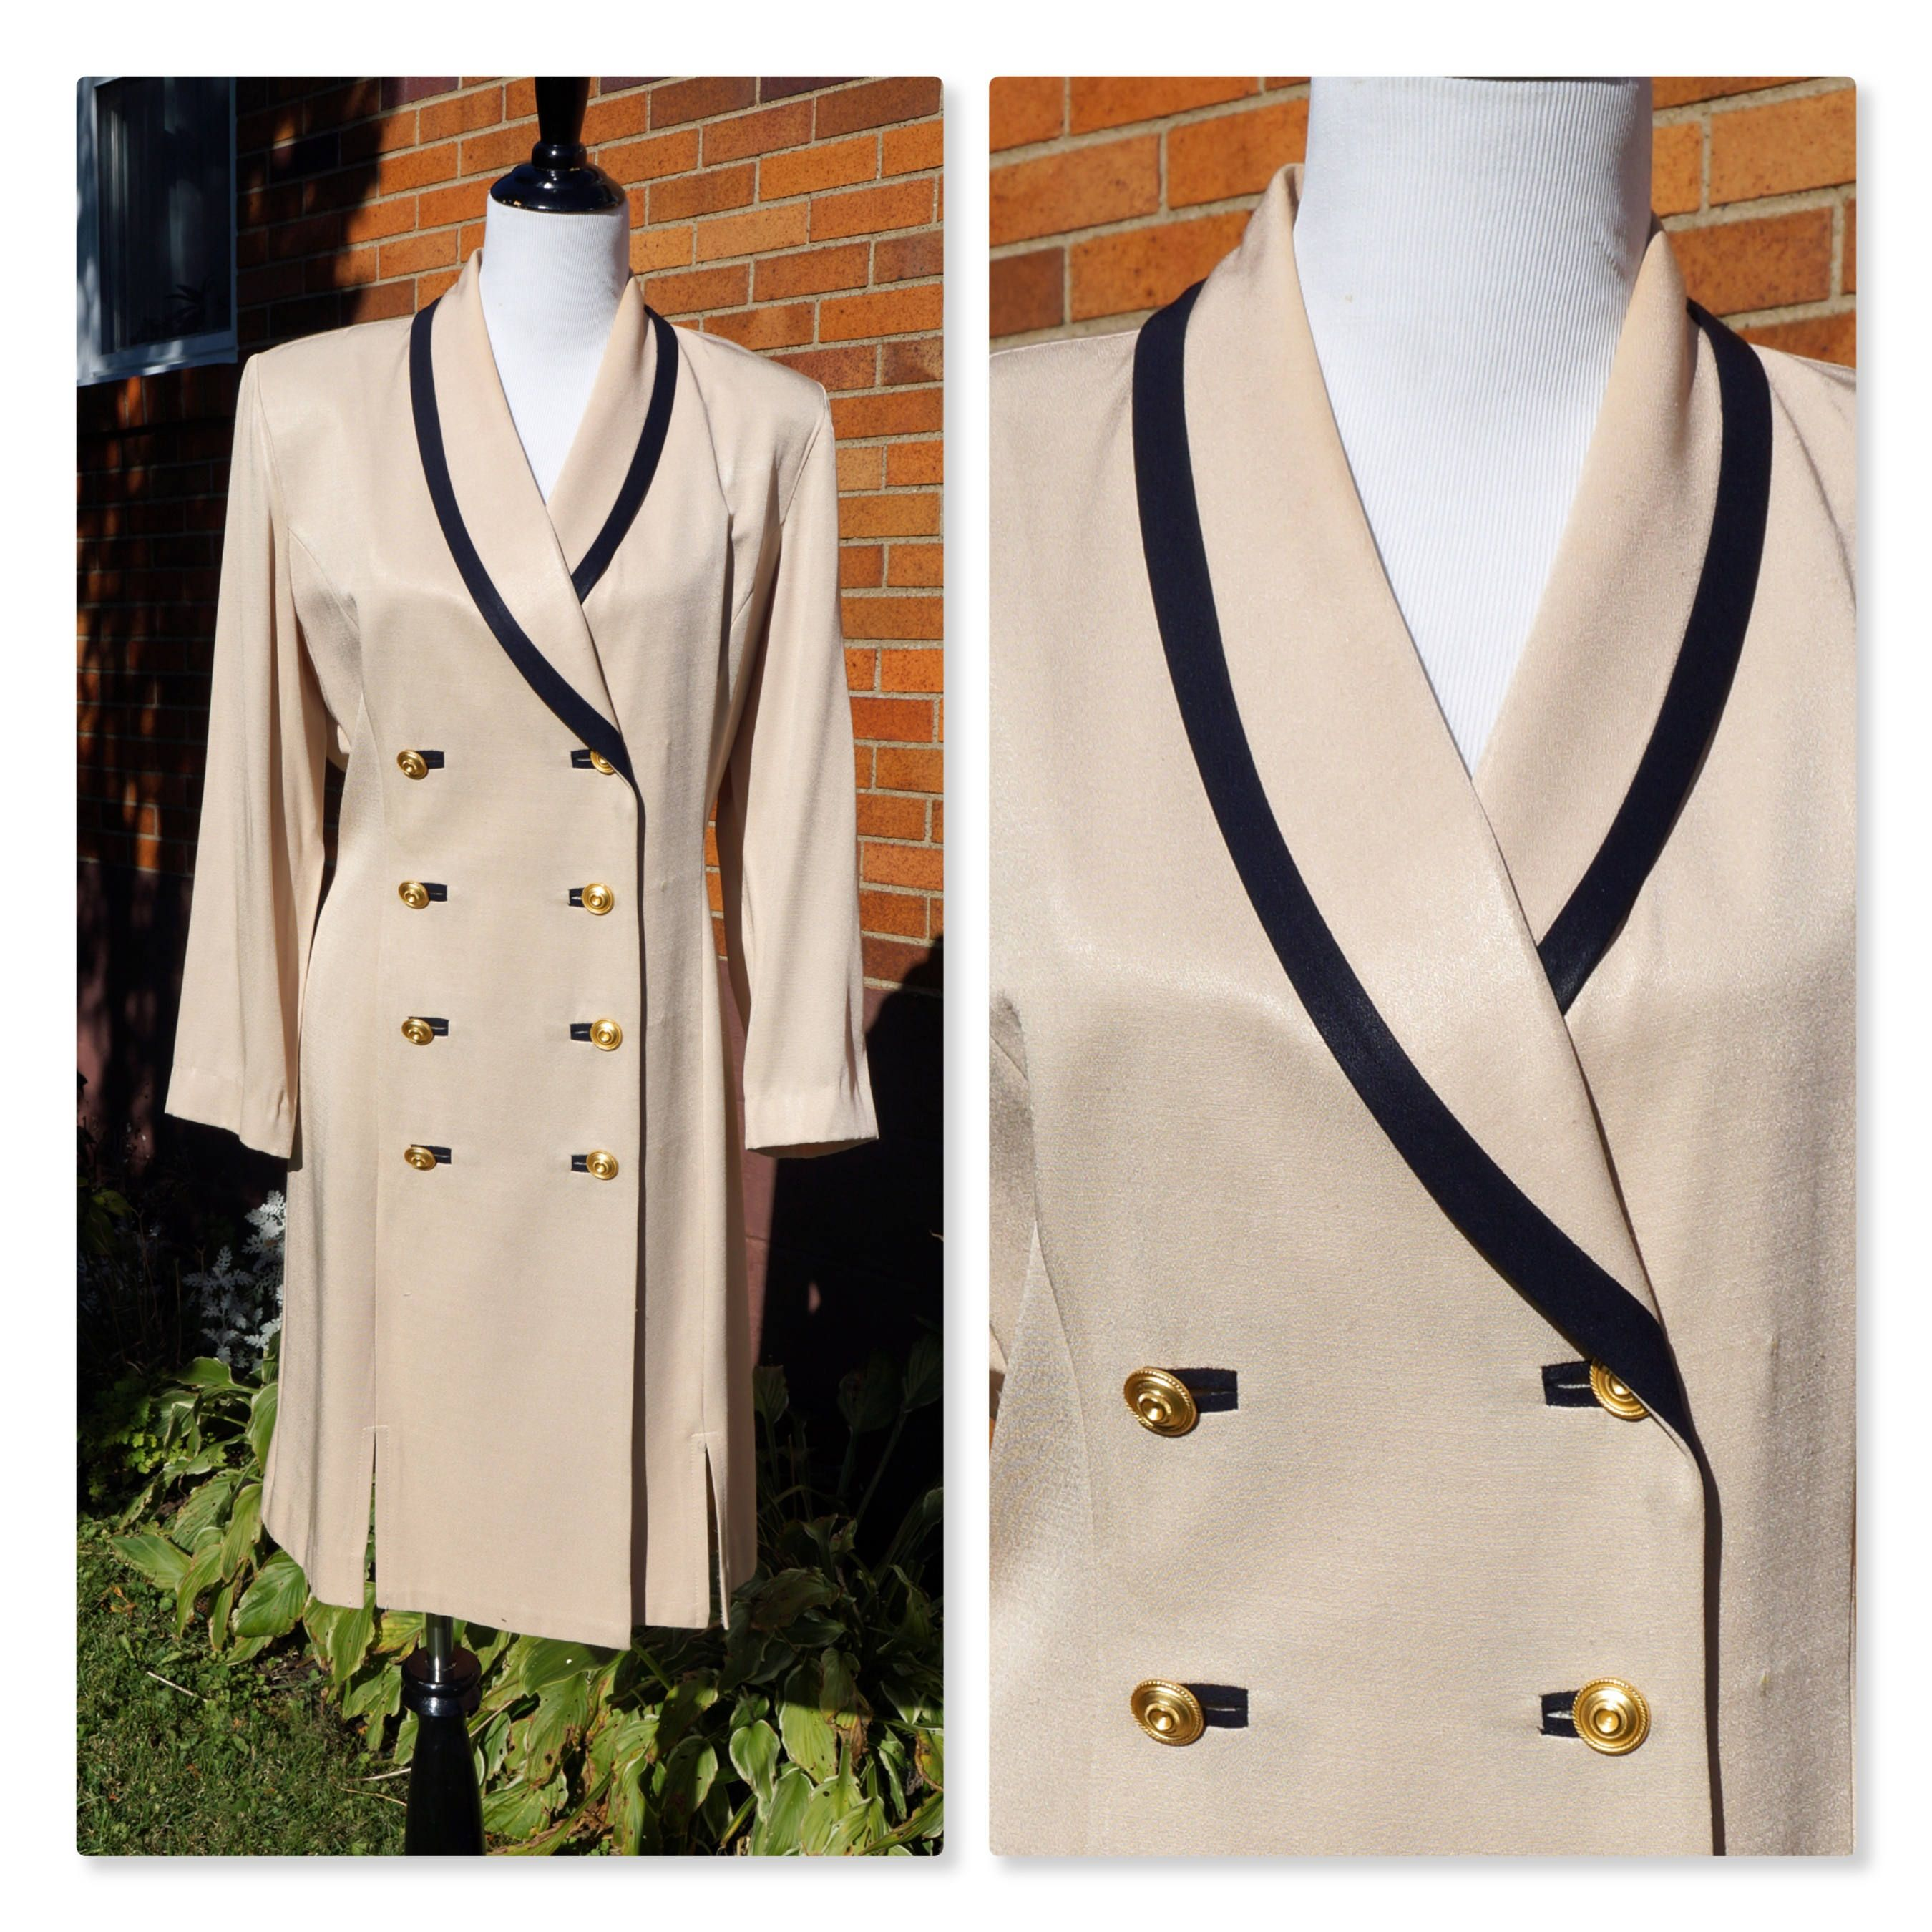 Vintage double breasted dress cream and black gold tone buttons